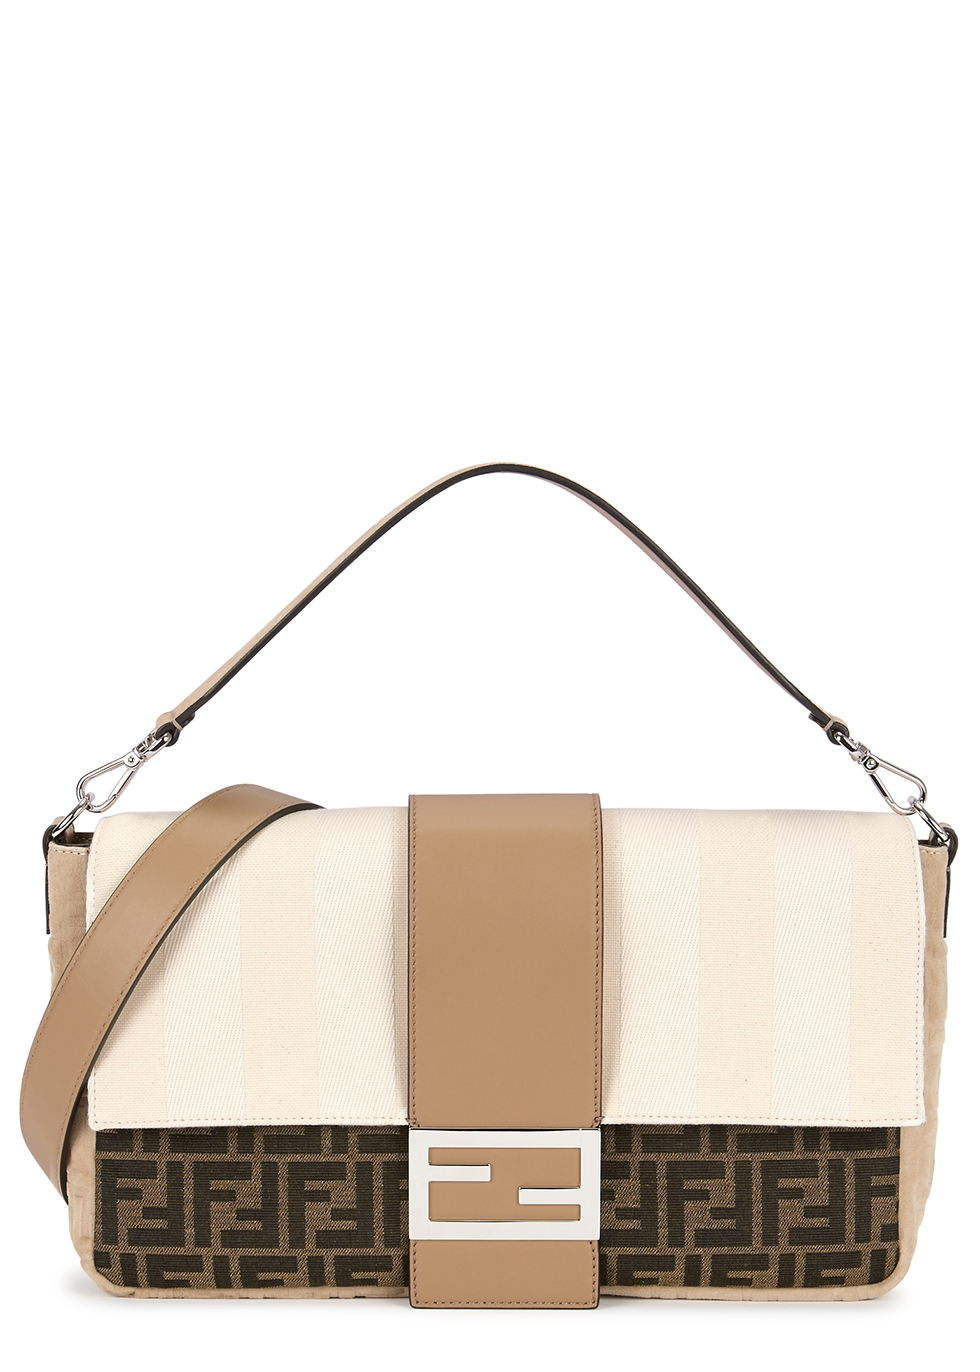 Fendi Baguette large canvas cross body bag Harvey Nichols